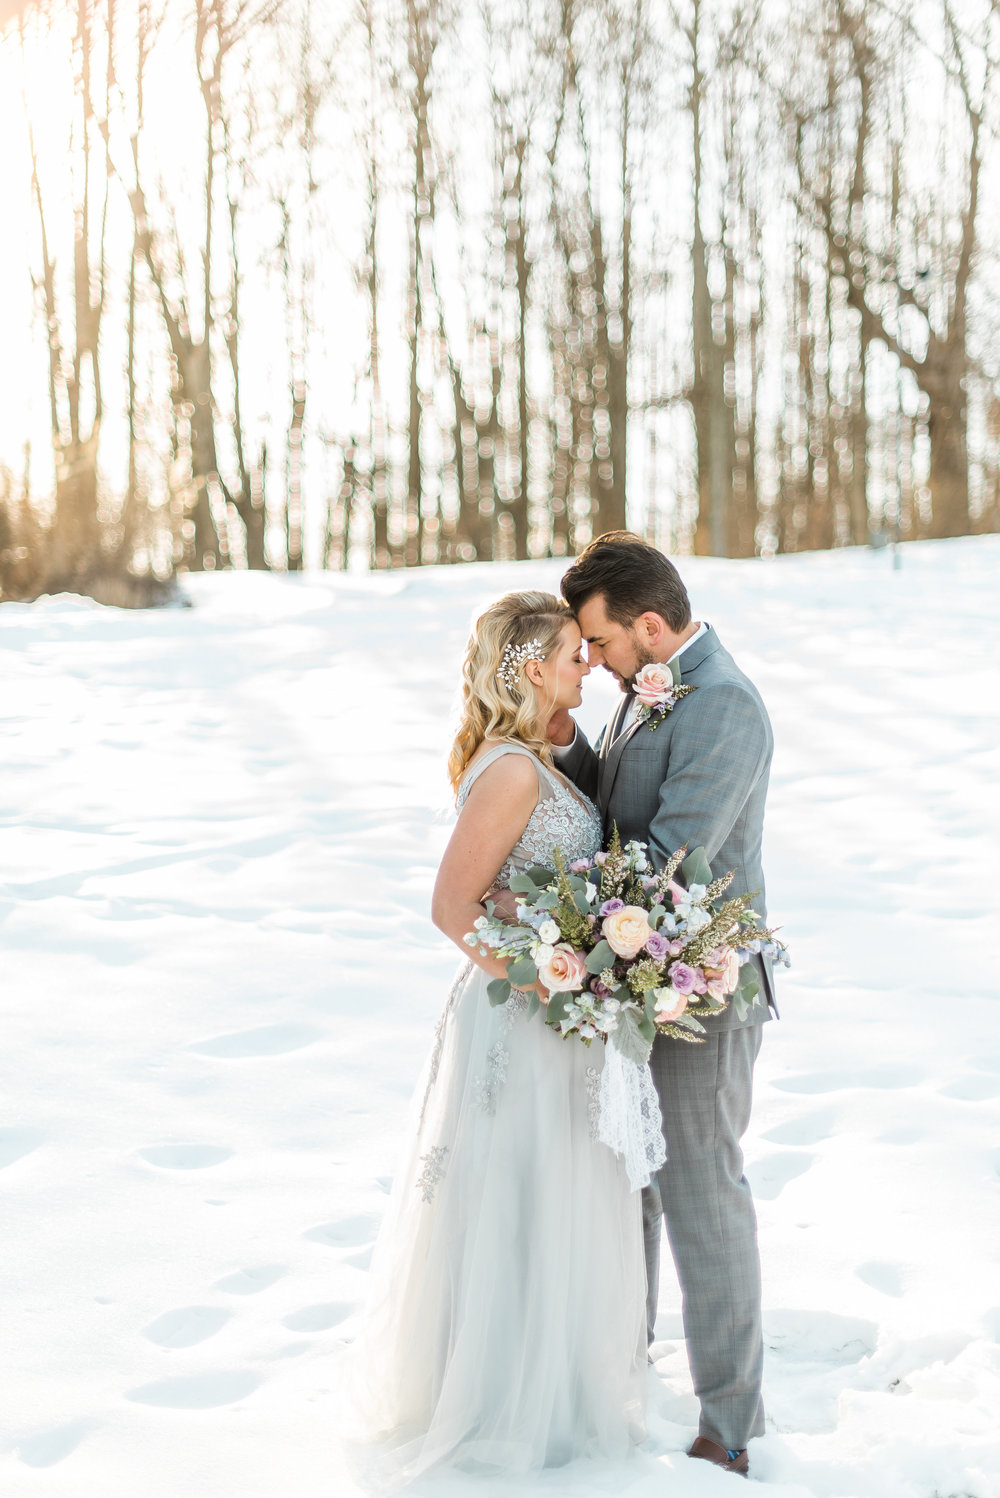 winter-romantic-snowy-pastel-pennsylvania-pittsburgh-wedding-styled-shoot-0017.jpg